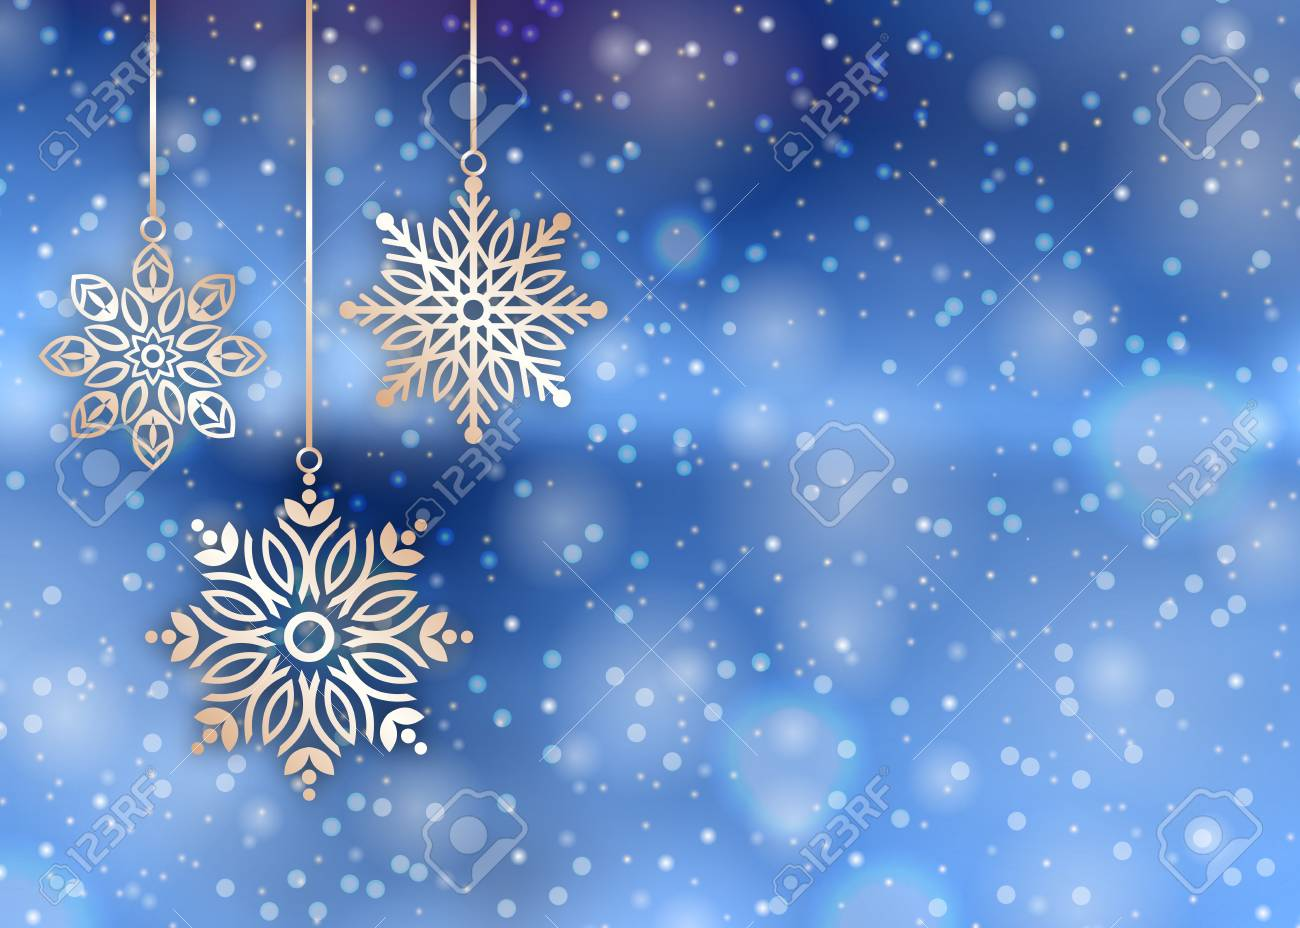 Christmas Snow.Merry Christmas And Happy New Year Background Christmas Snow